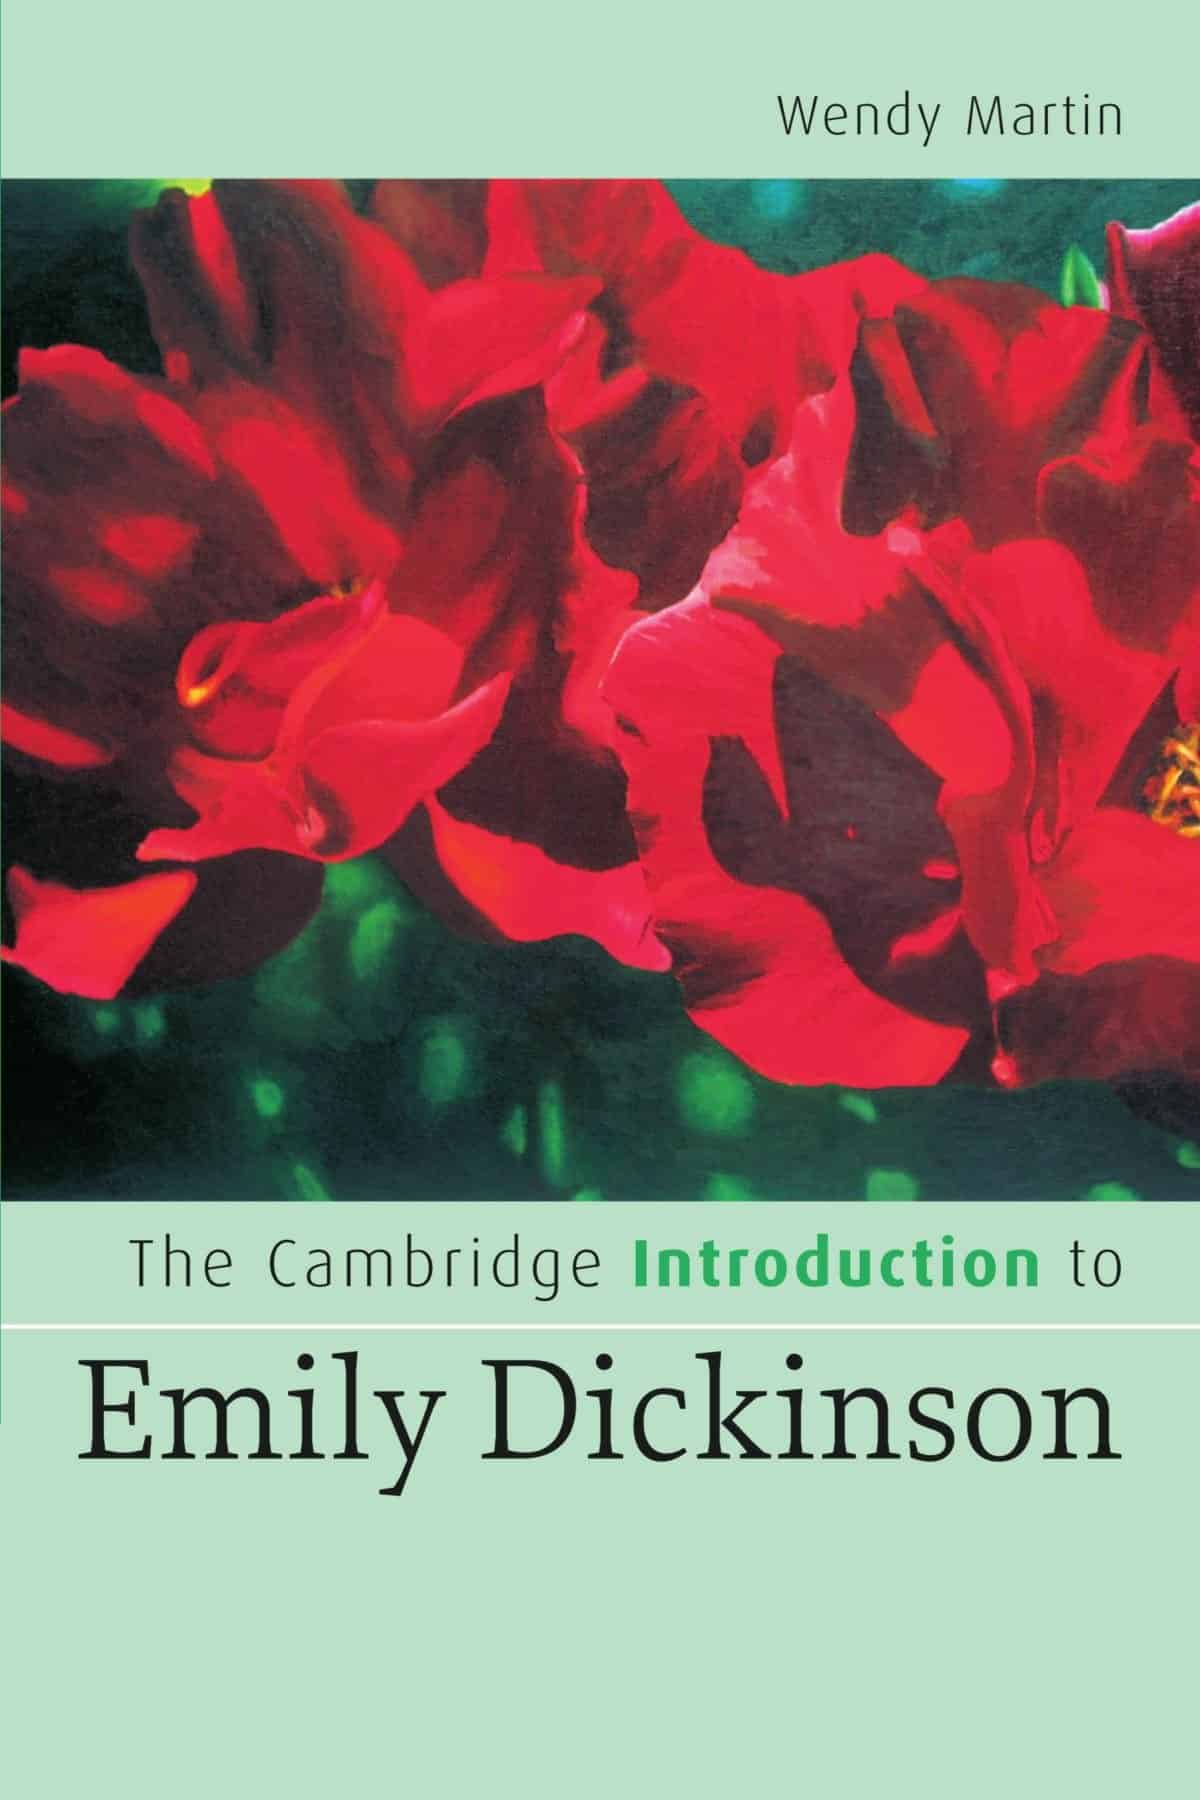 The Cambridge Introduction to Emily Dickinson - The Cambridge Introduction to Emily Dickinson